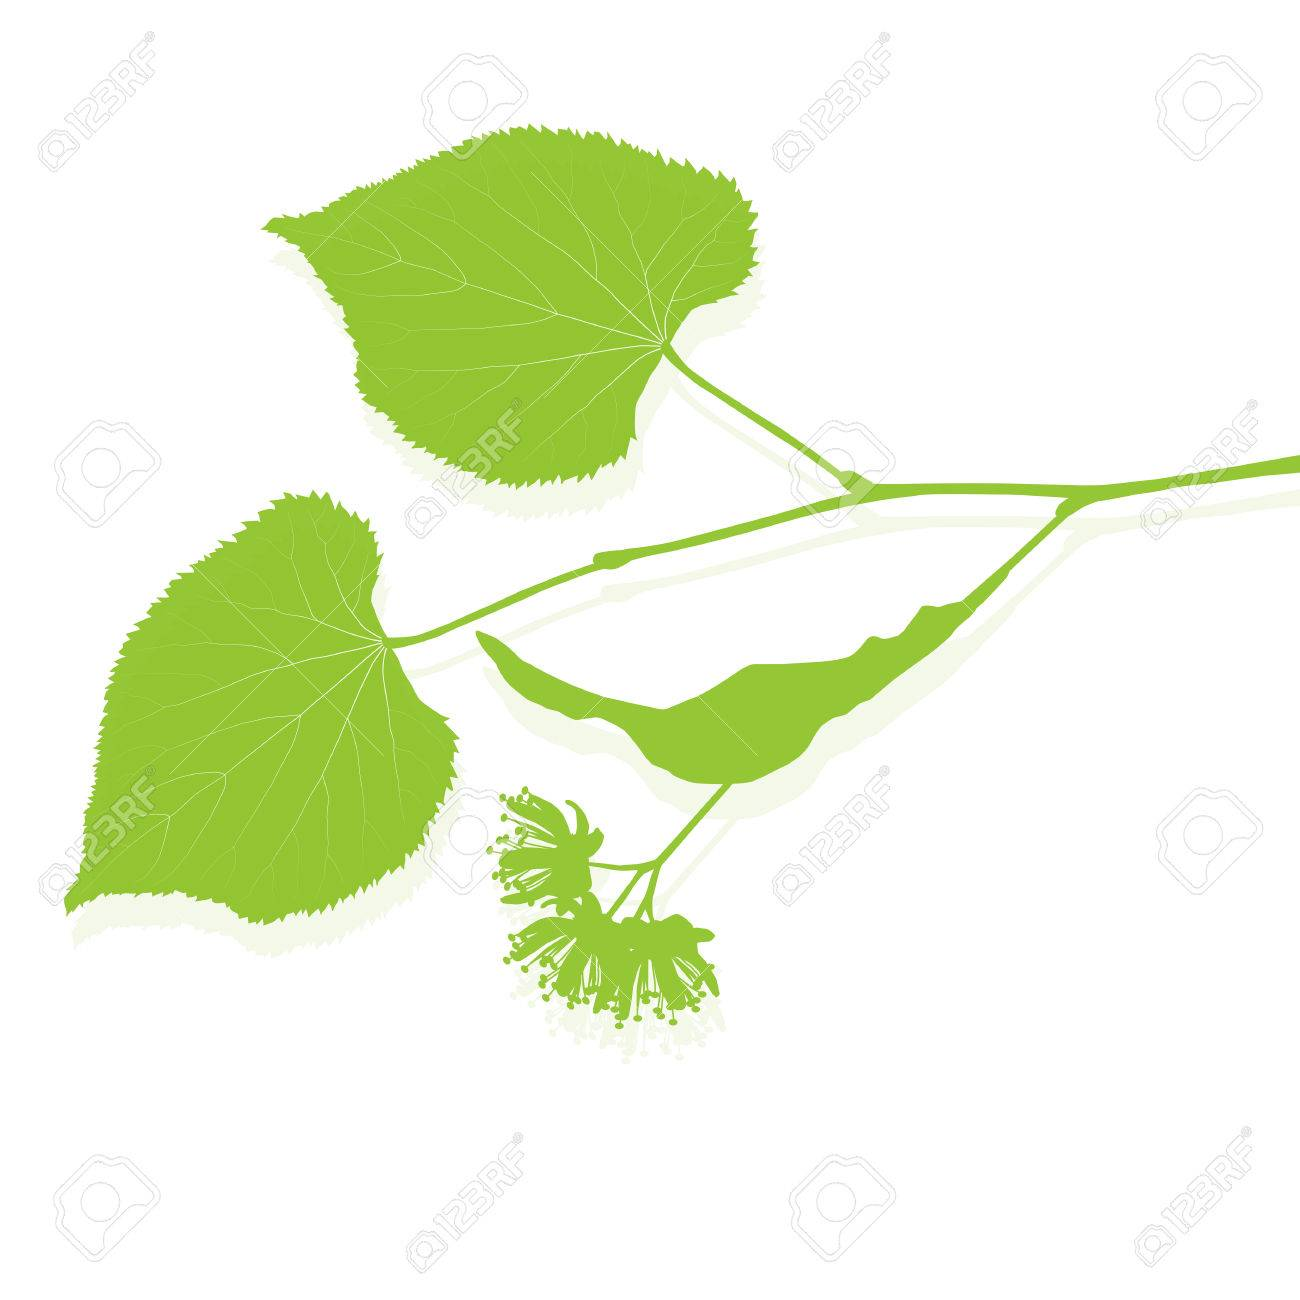 Linden flowers ecology background vector abstract illustration - 61922137